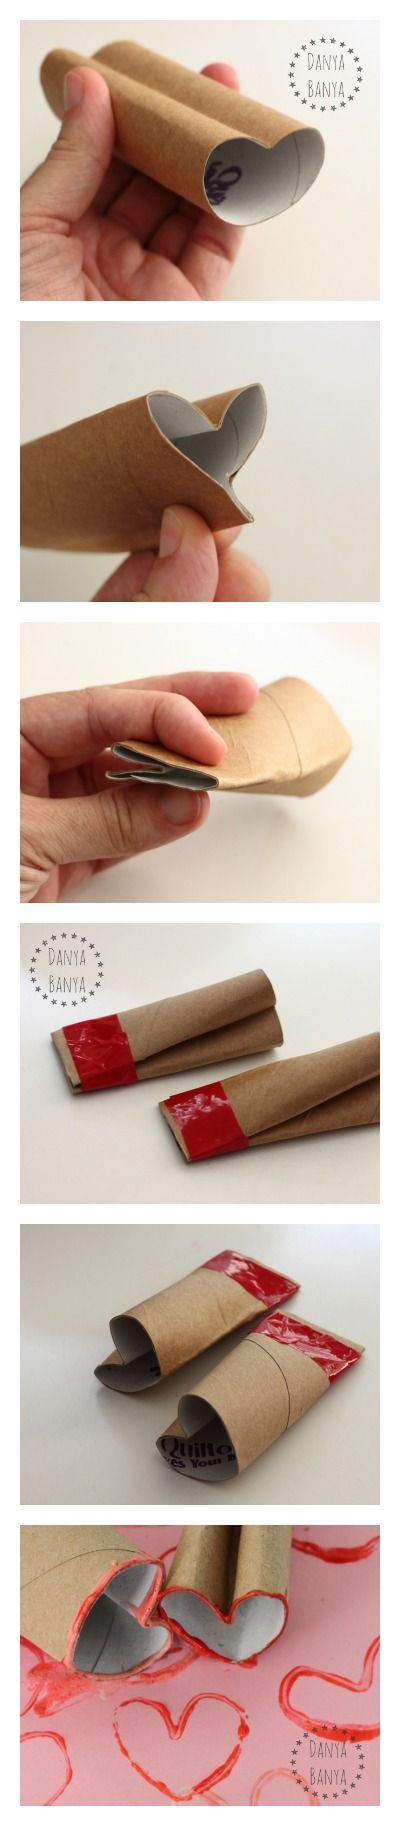 How to make a heart shape stamp